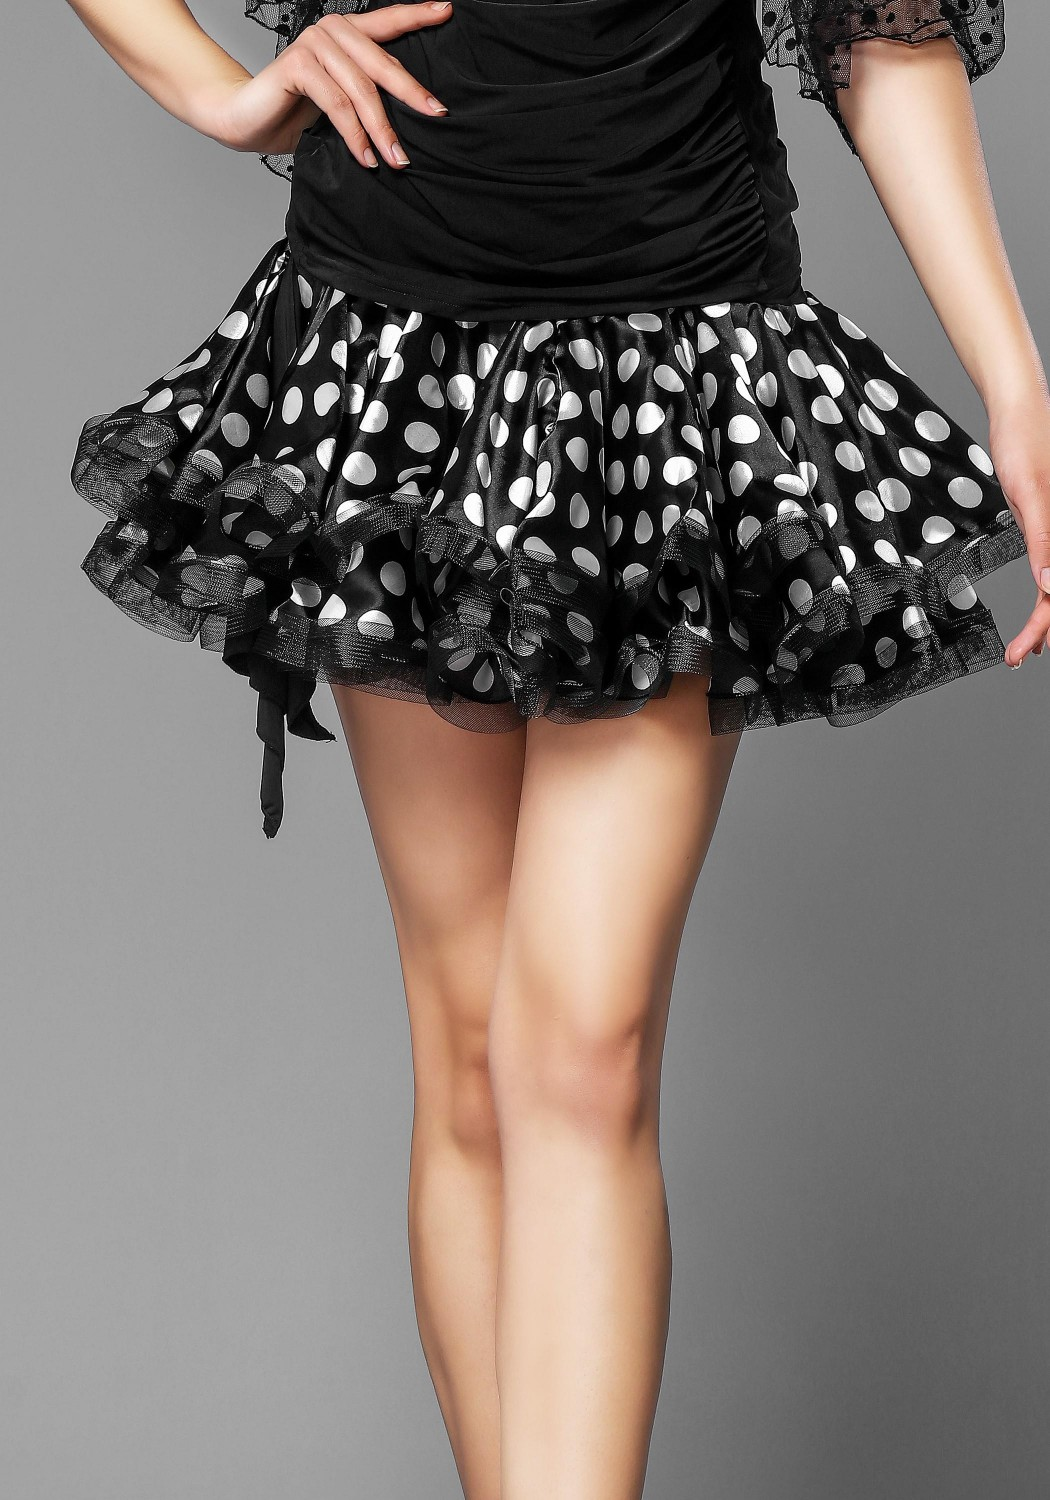 White Spotted Latin Rhythm Skirt